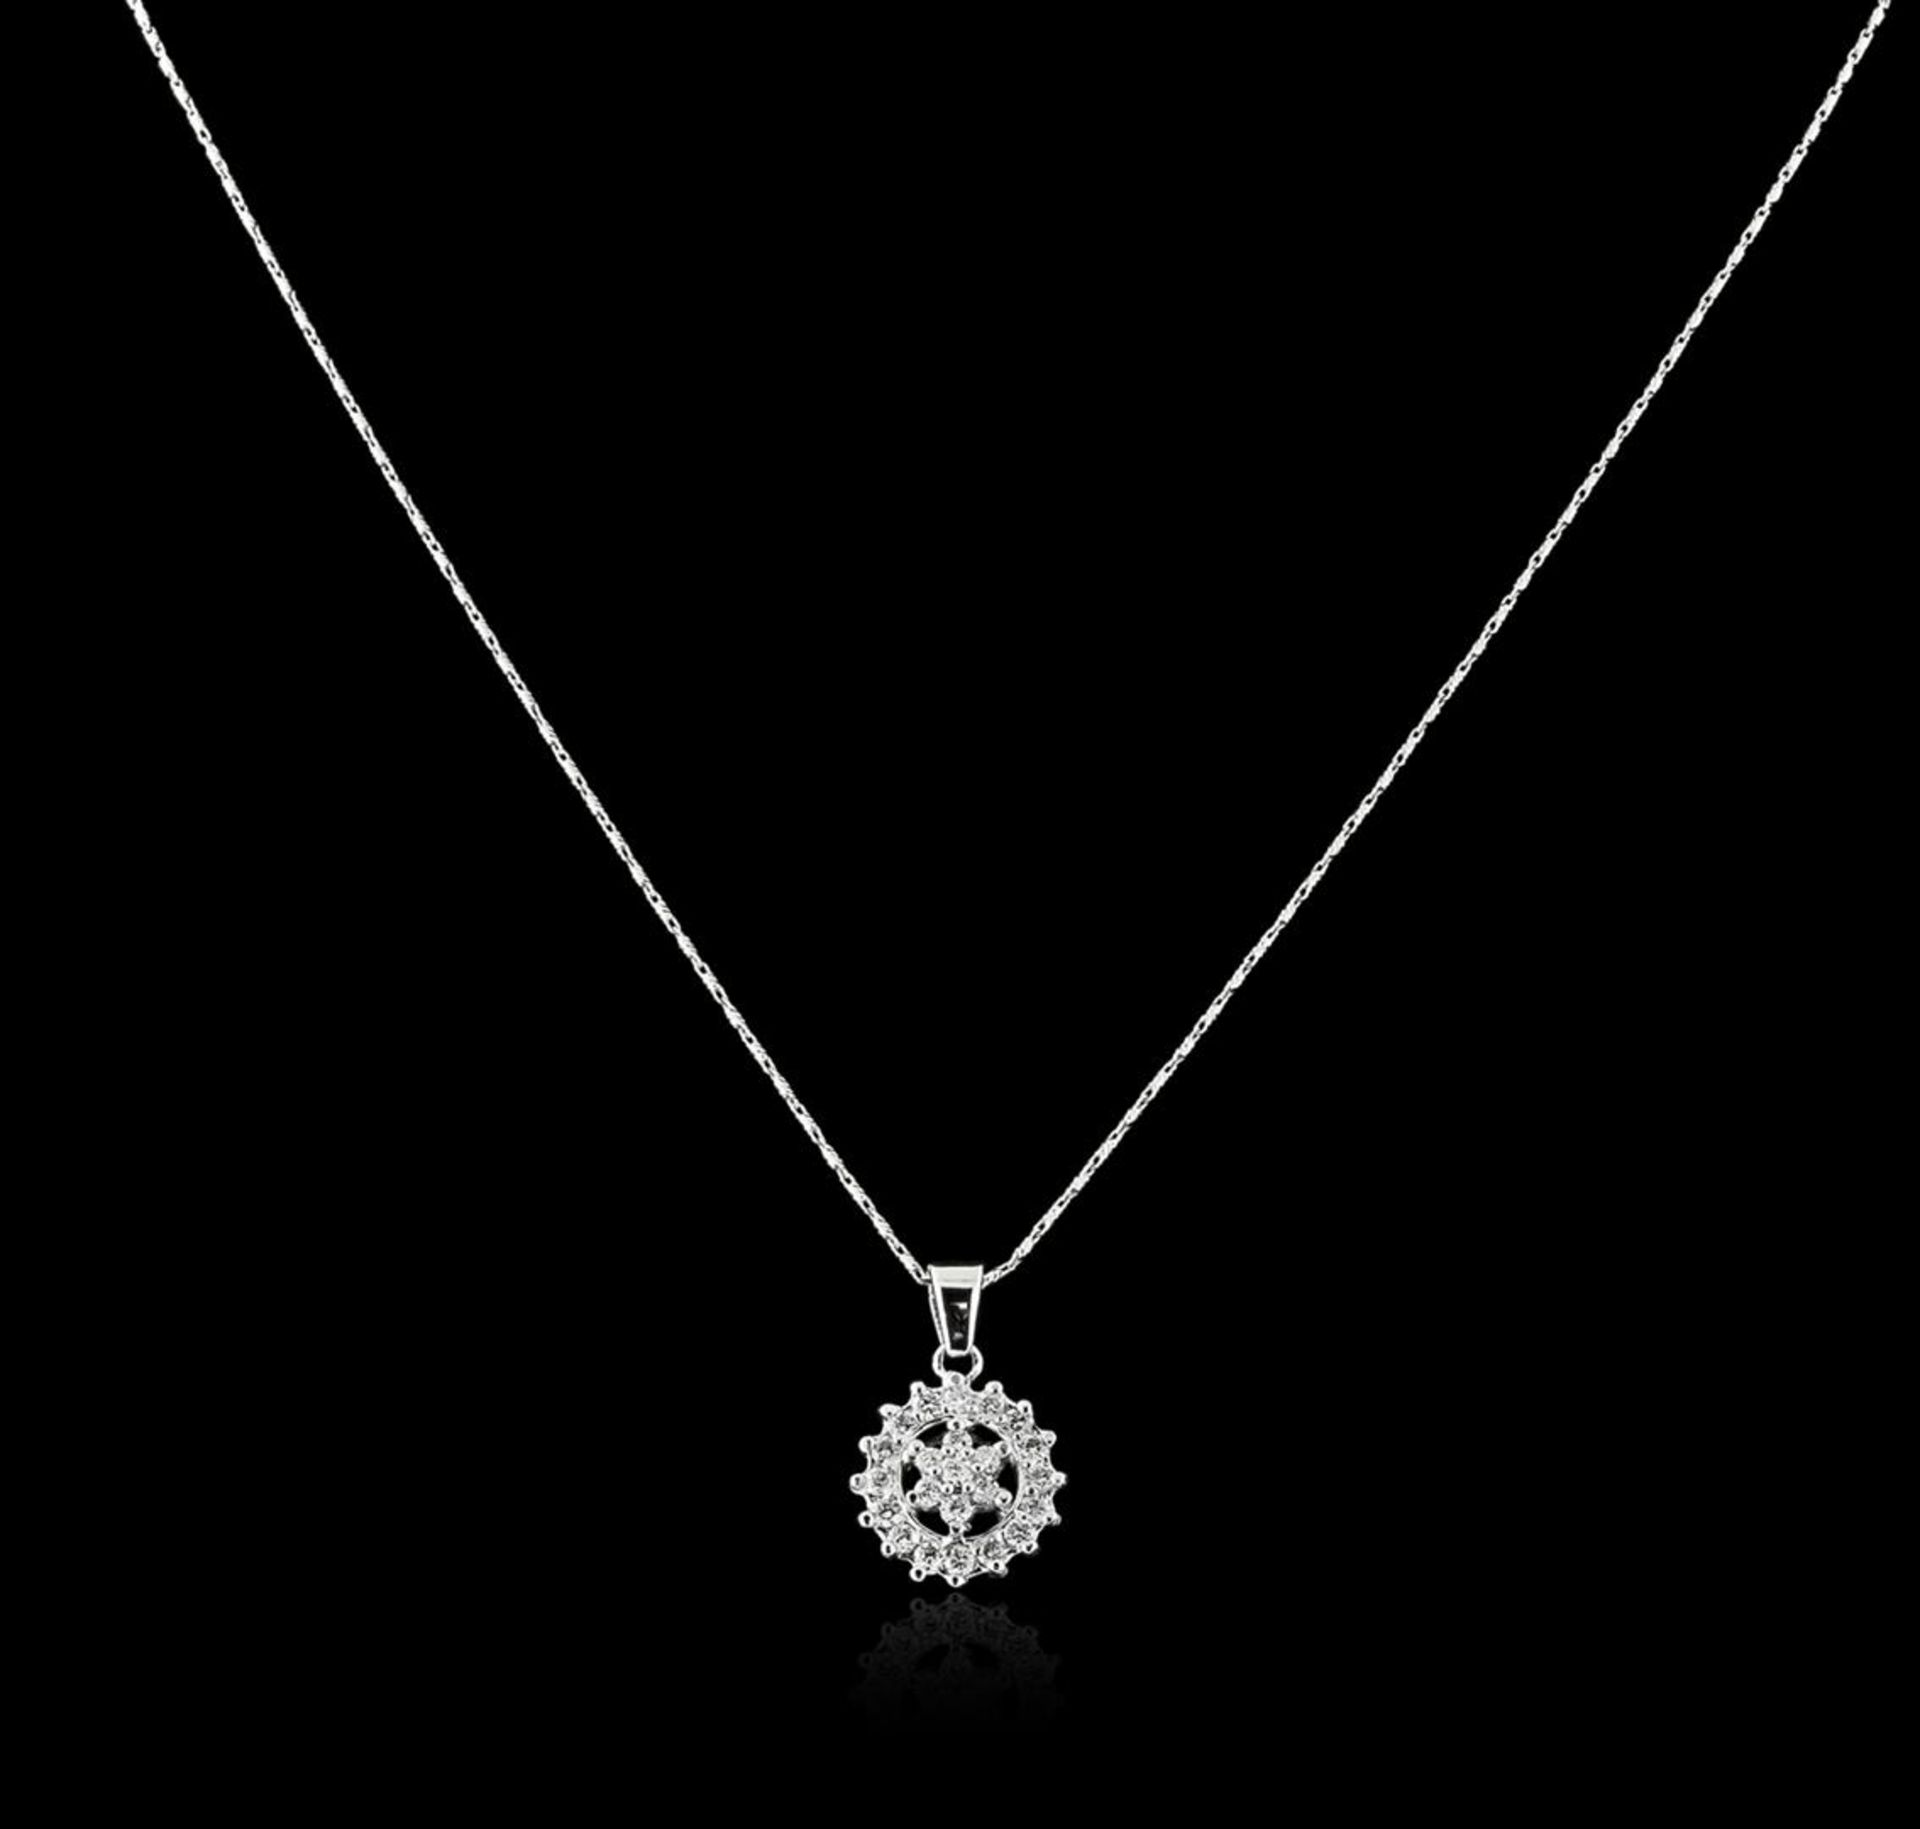 14KT White Gold 0.71 ctw Diamond Pendant With Chain - Image 2 of 3